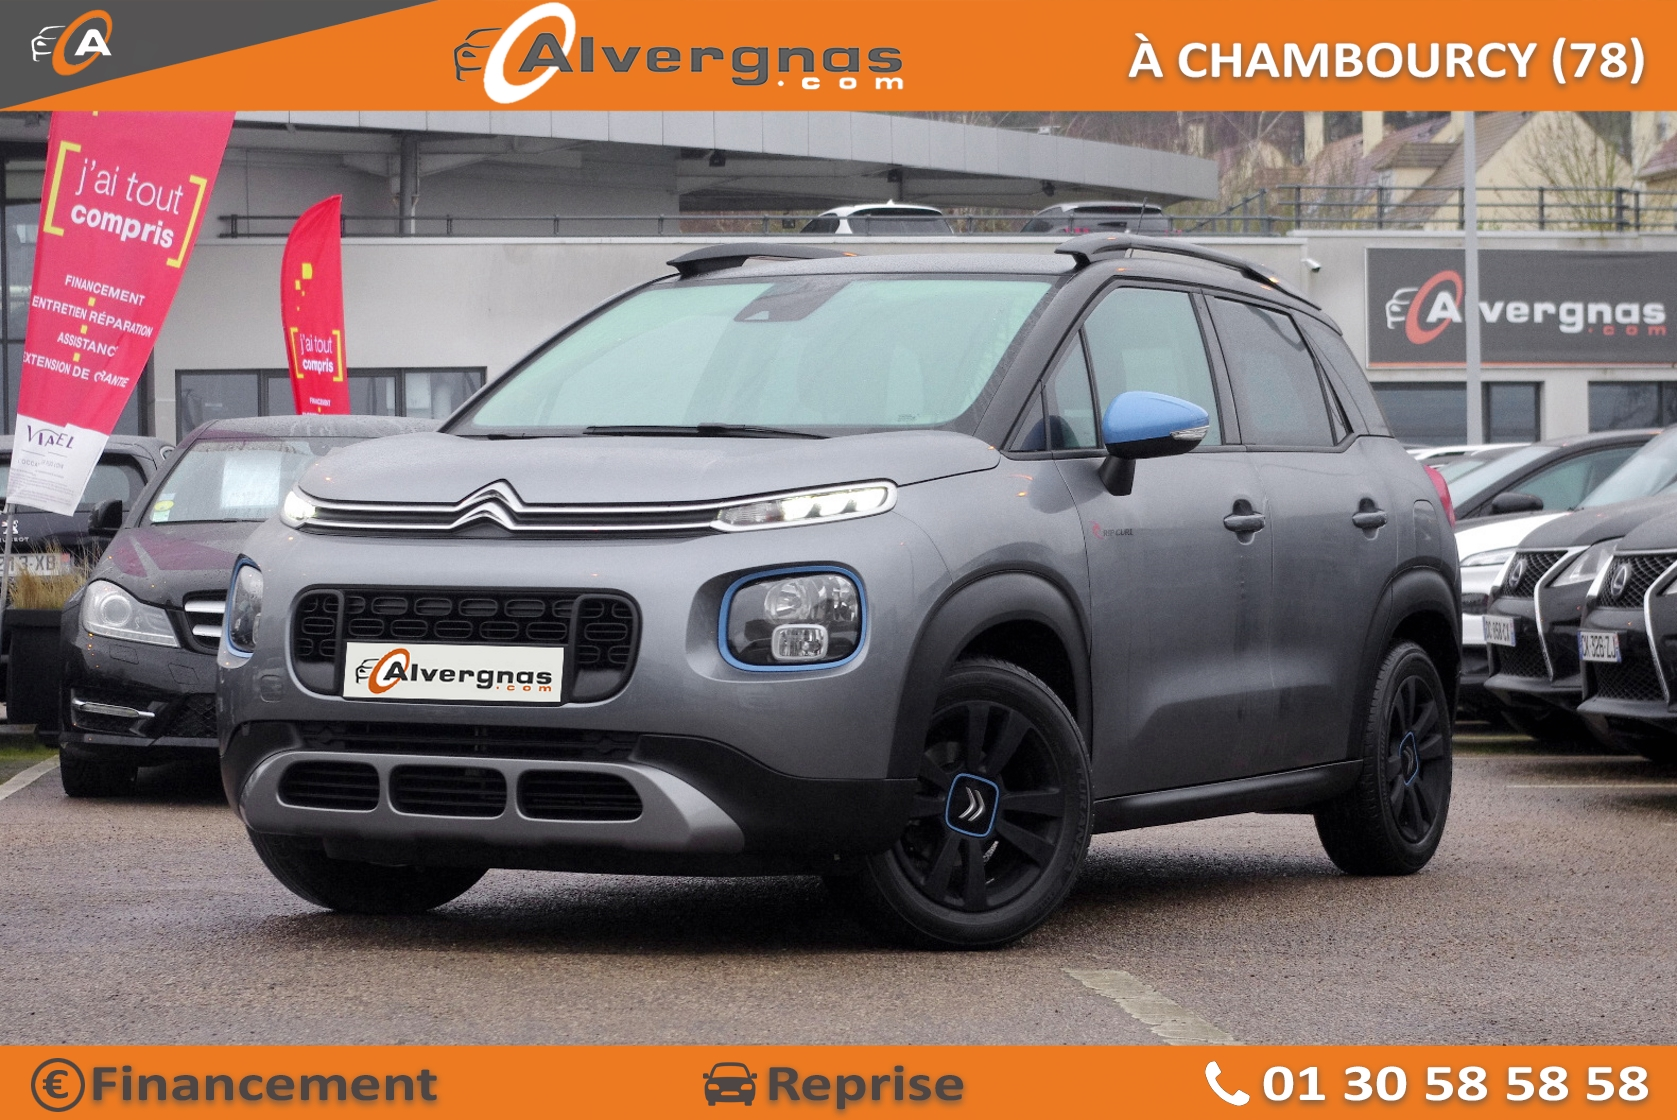 CITROEN C3 AIRCROSS d'occasion sur Paris